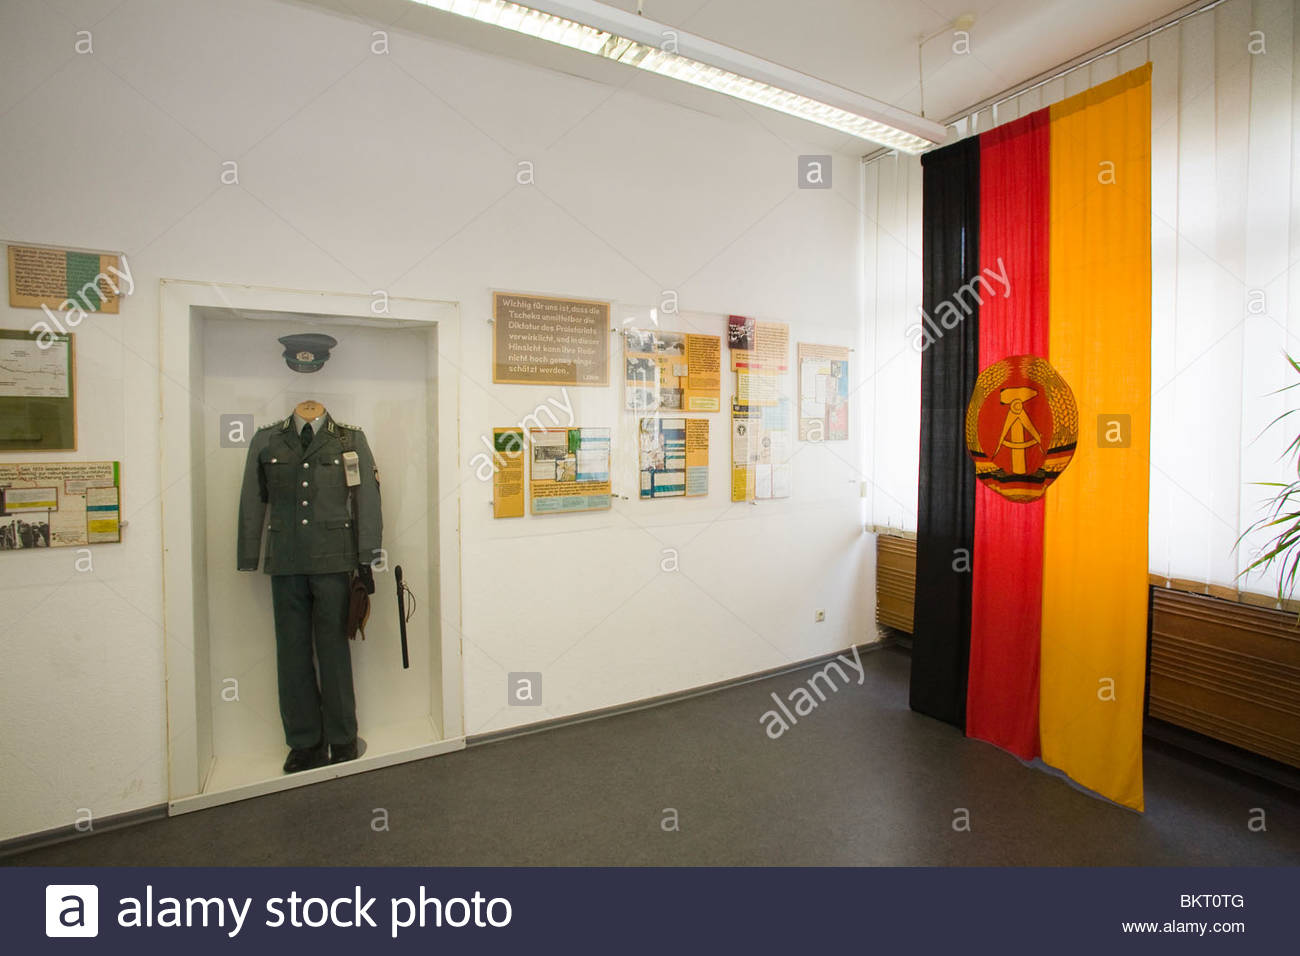 lag of the DDR and uniform of the Stasi,the secret center of the Stasi in the days of the GDR,the Stasi Museum,Berlin,Germany - Stock Image